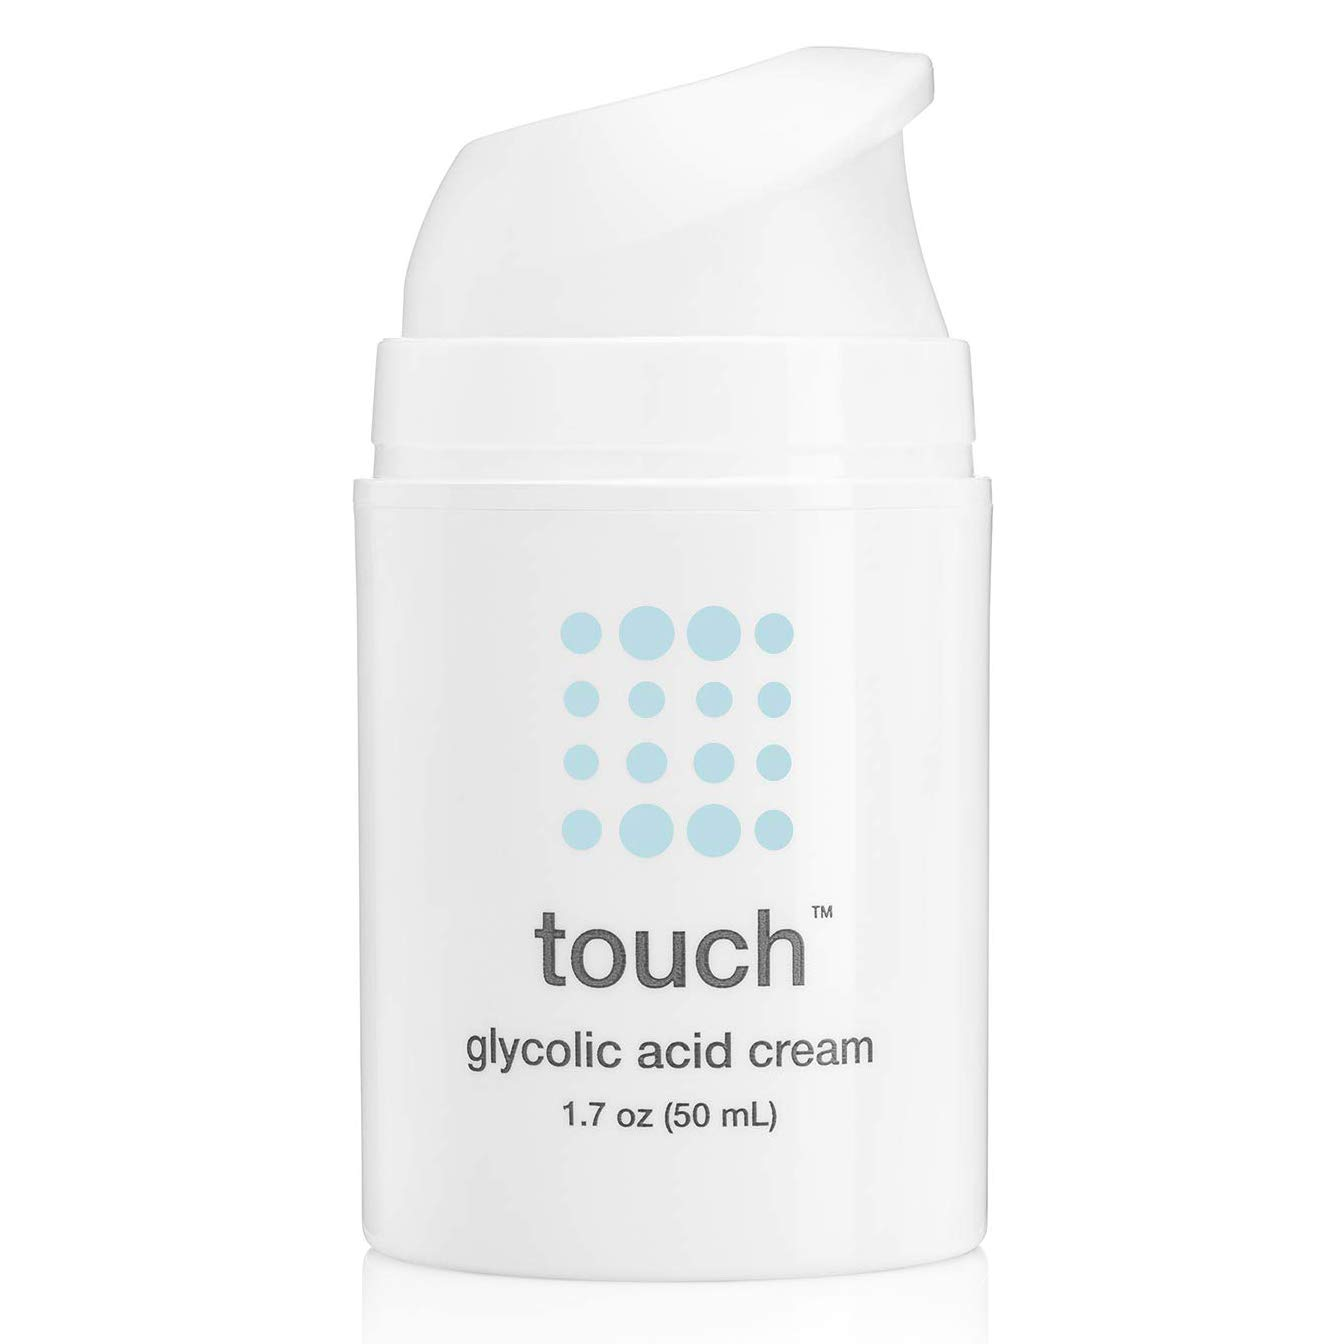 10% Glycolic Acid Anti Aging Wrinkle Face & Neck Cream - Oil-Free Moisturizer with Hyaluronic Acid & Squalane - Lightweight & Fast Absorption, Great Under Makeup - Day or Night Cream, 50 ml